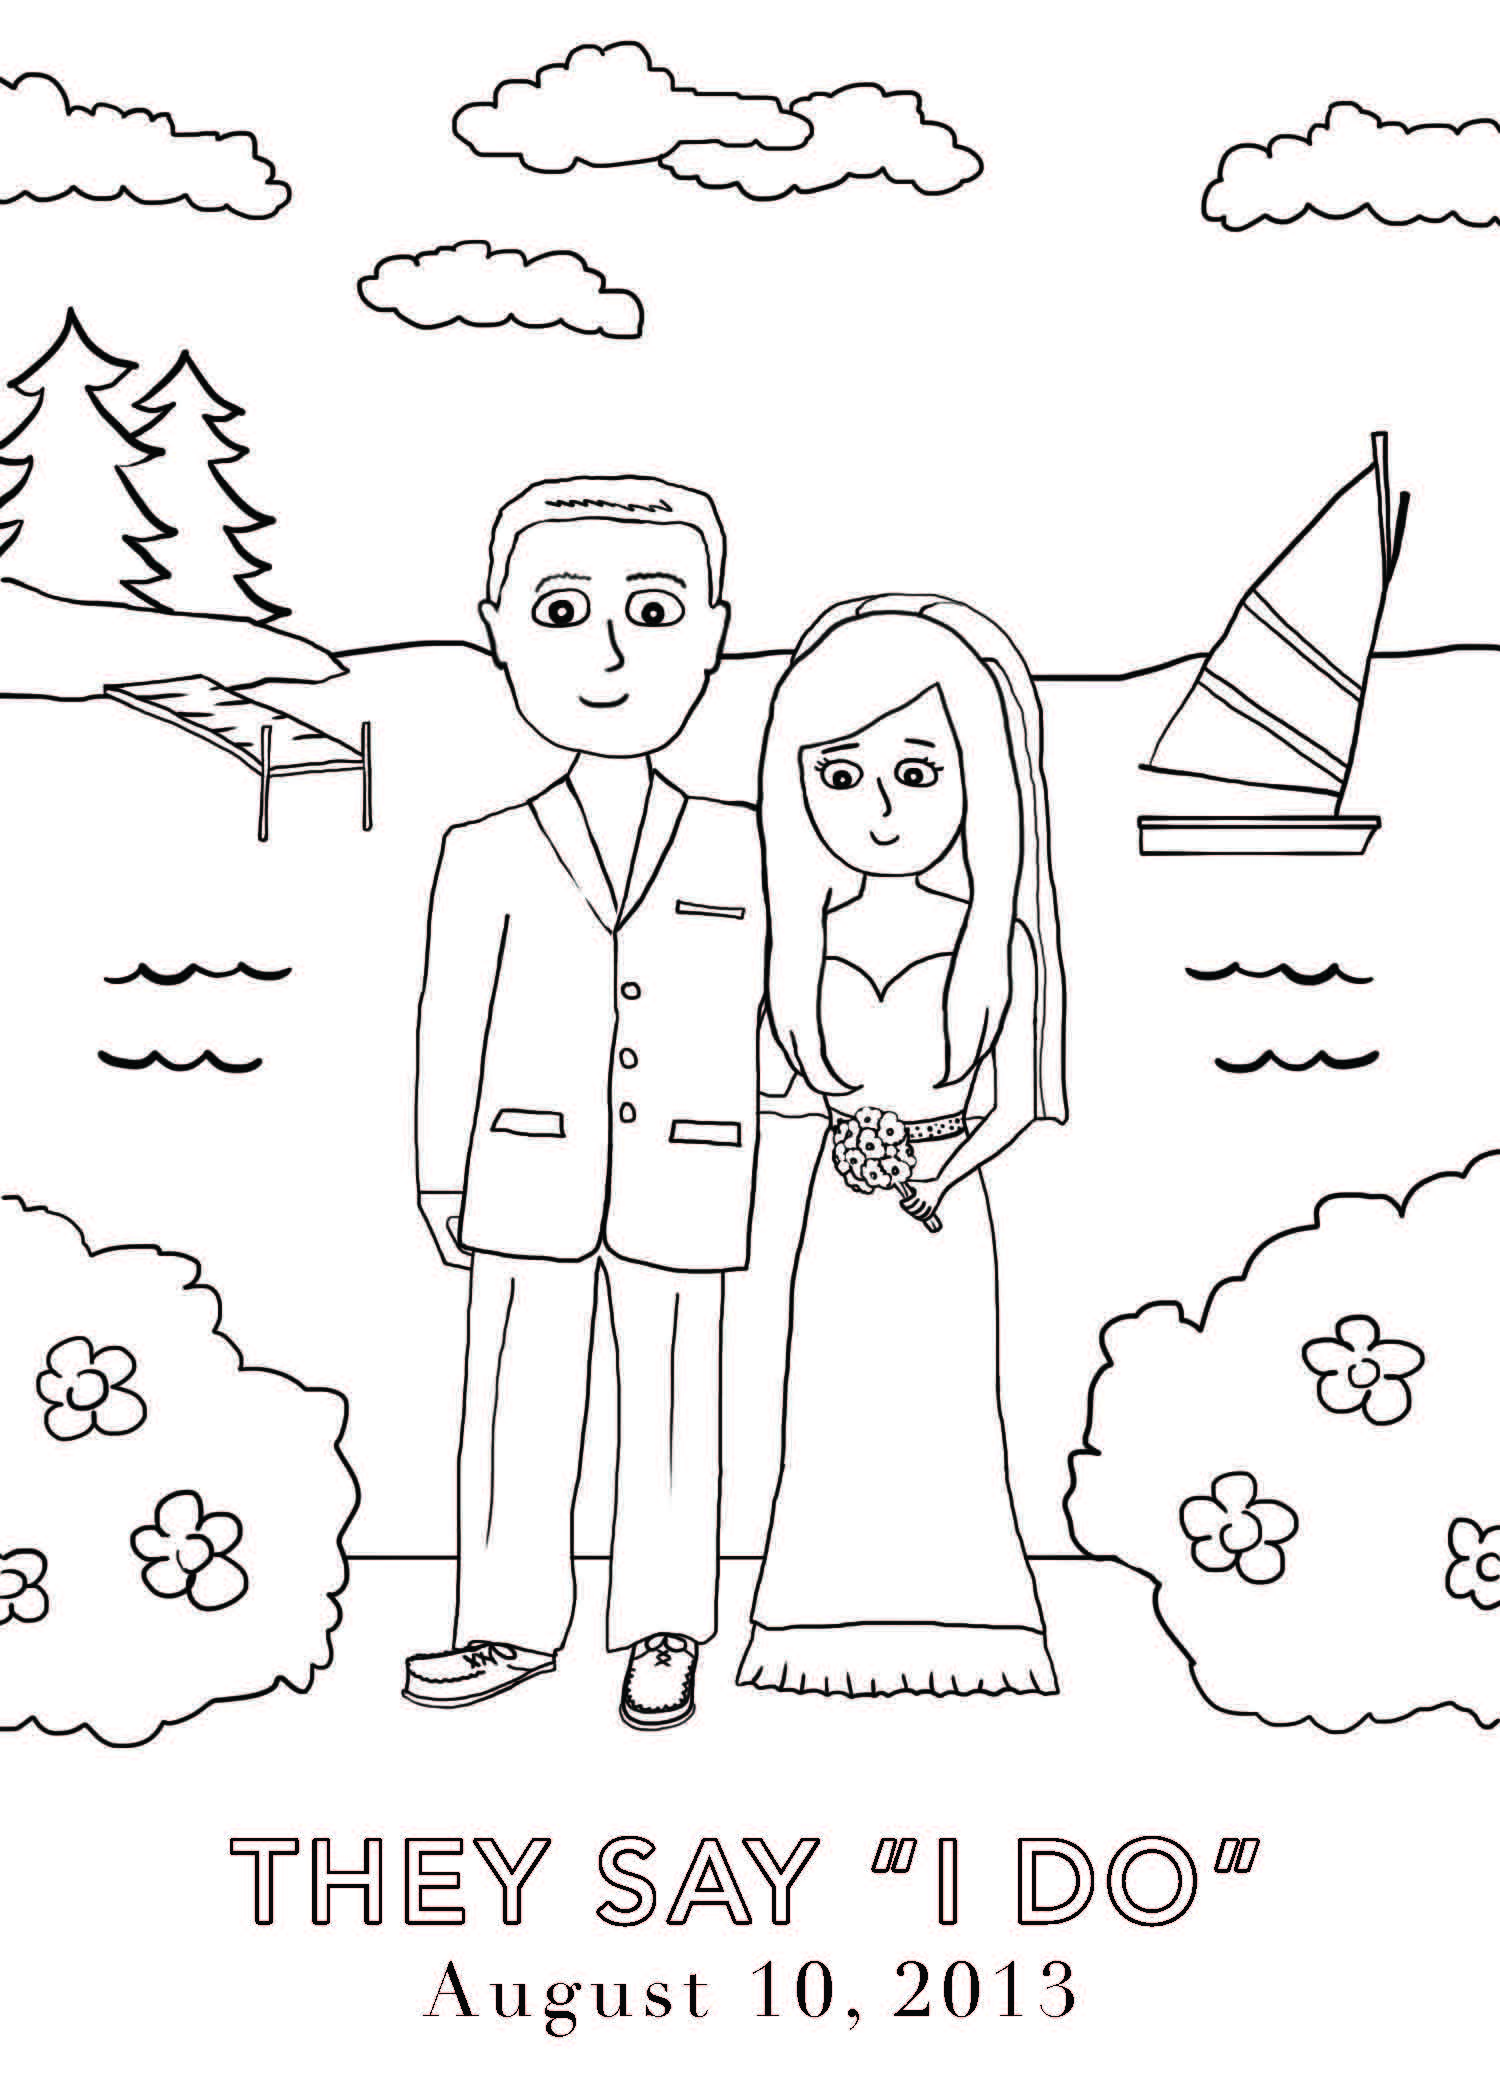 Coloring book wedding pictures - Gerten Coloring Book